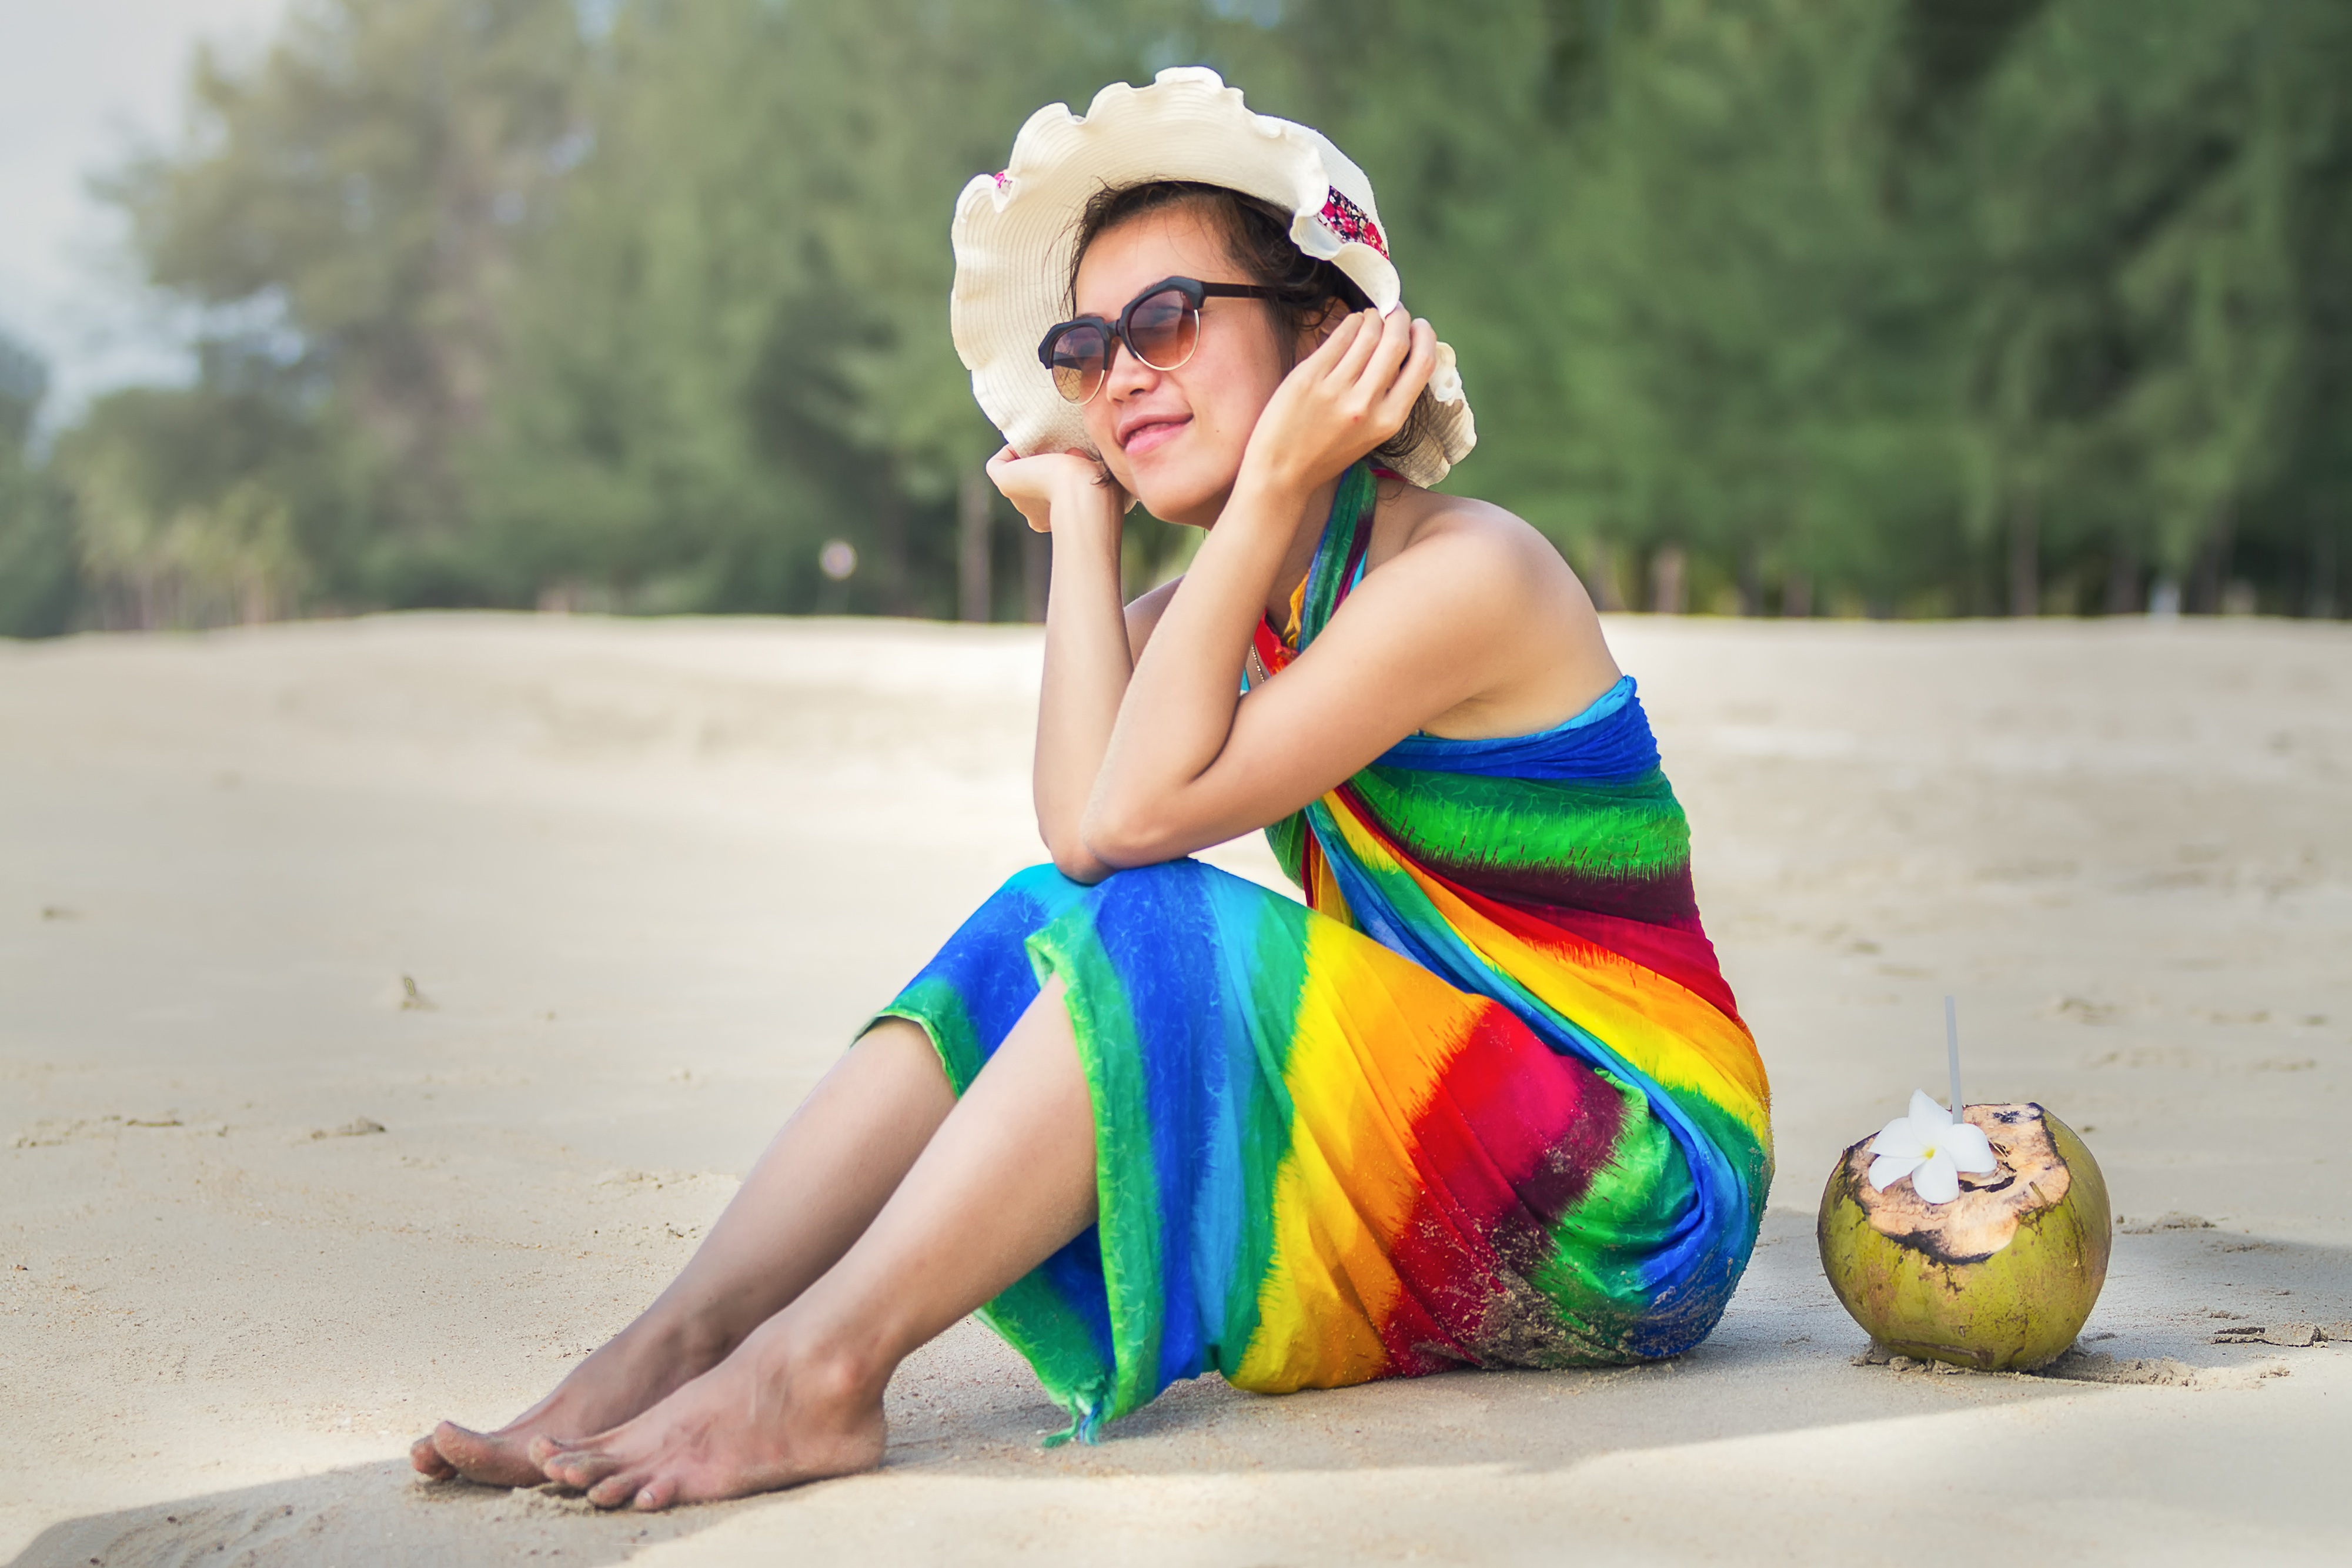 Caucasian people, beach, food, water, young, woman